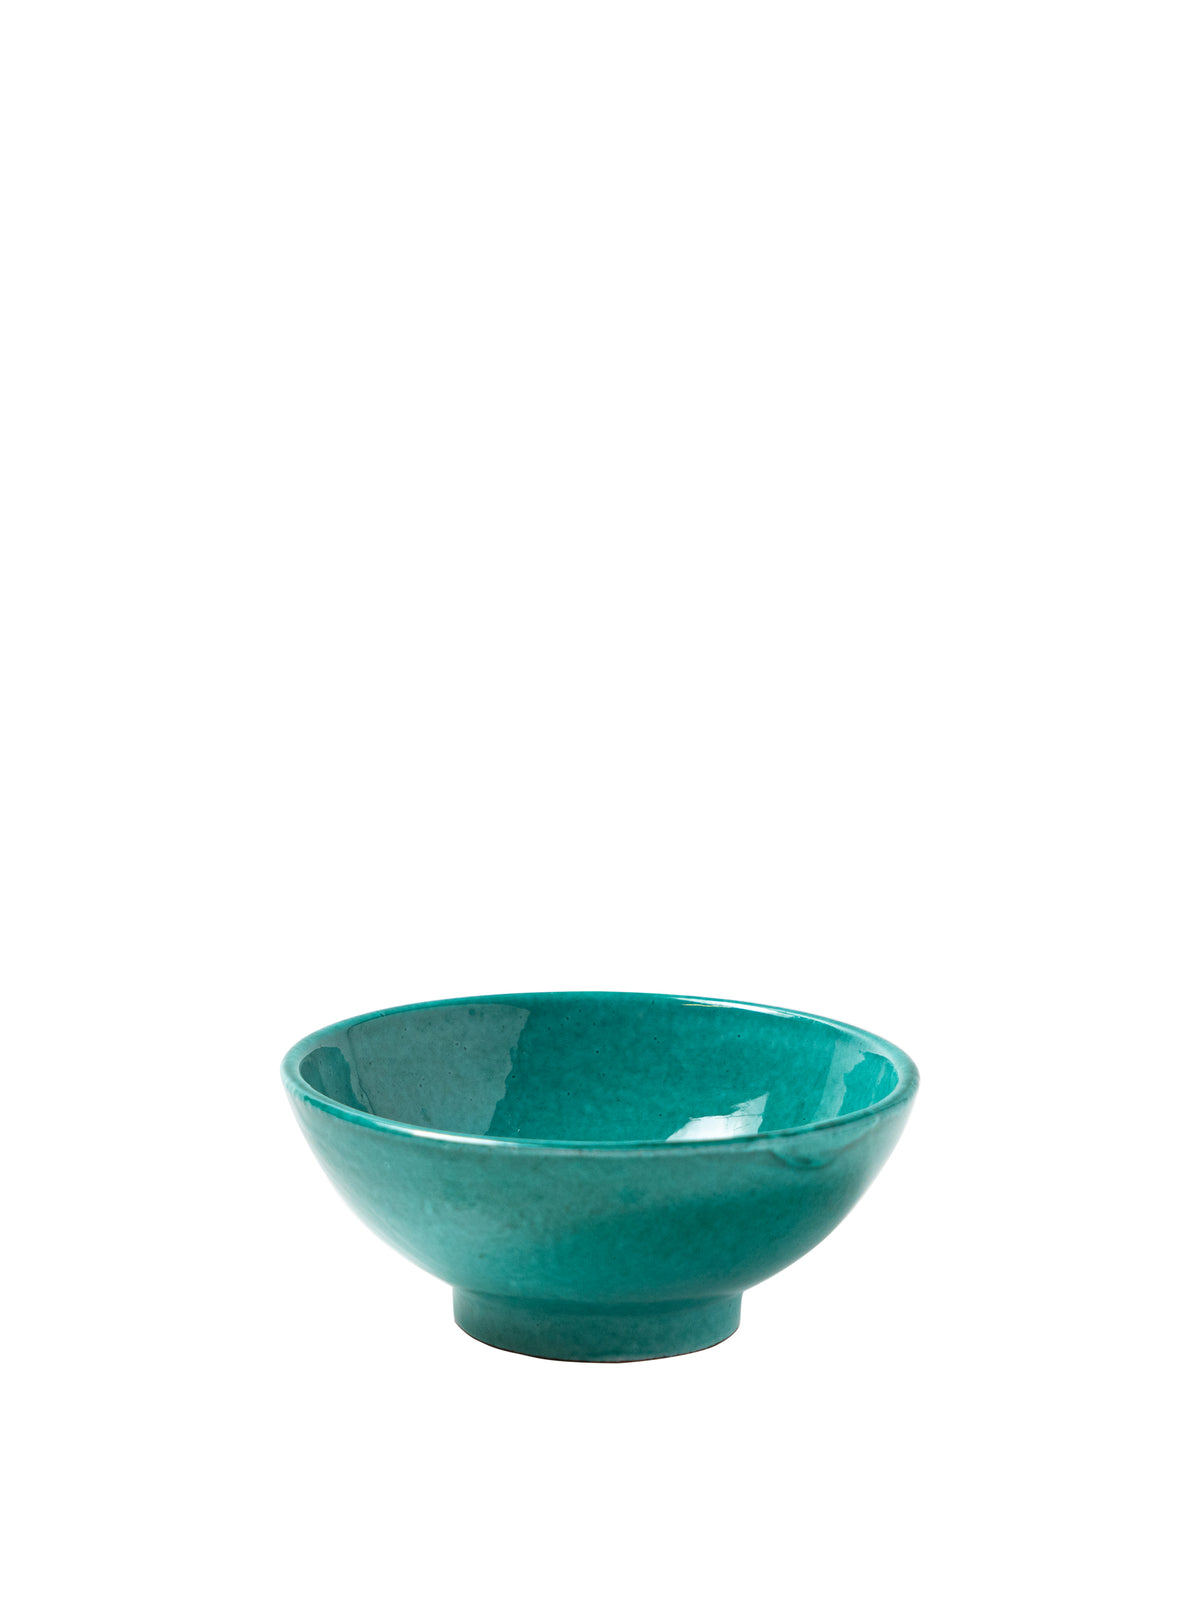 Casa Verde Small Bowl with Green Glaze